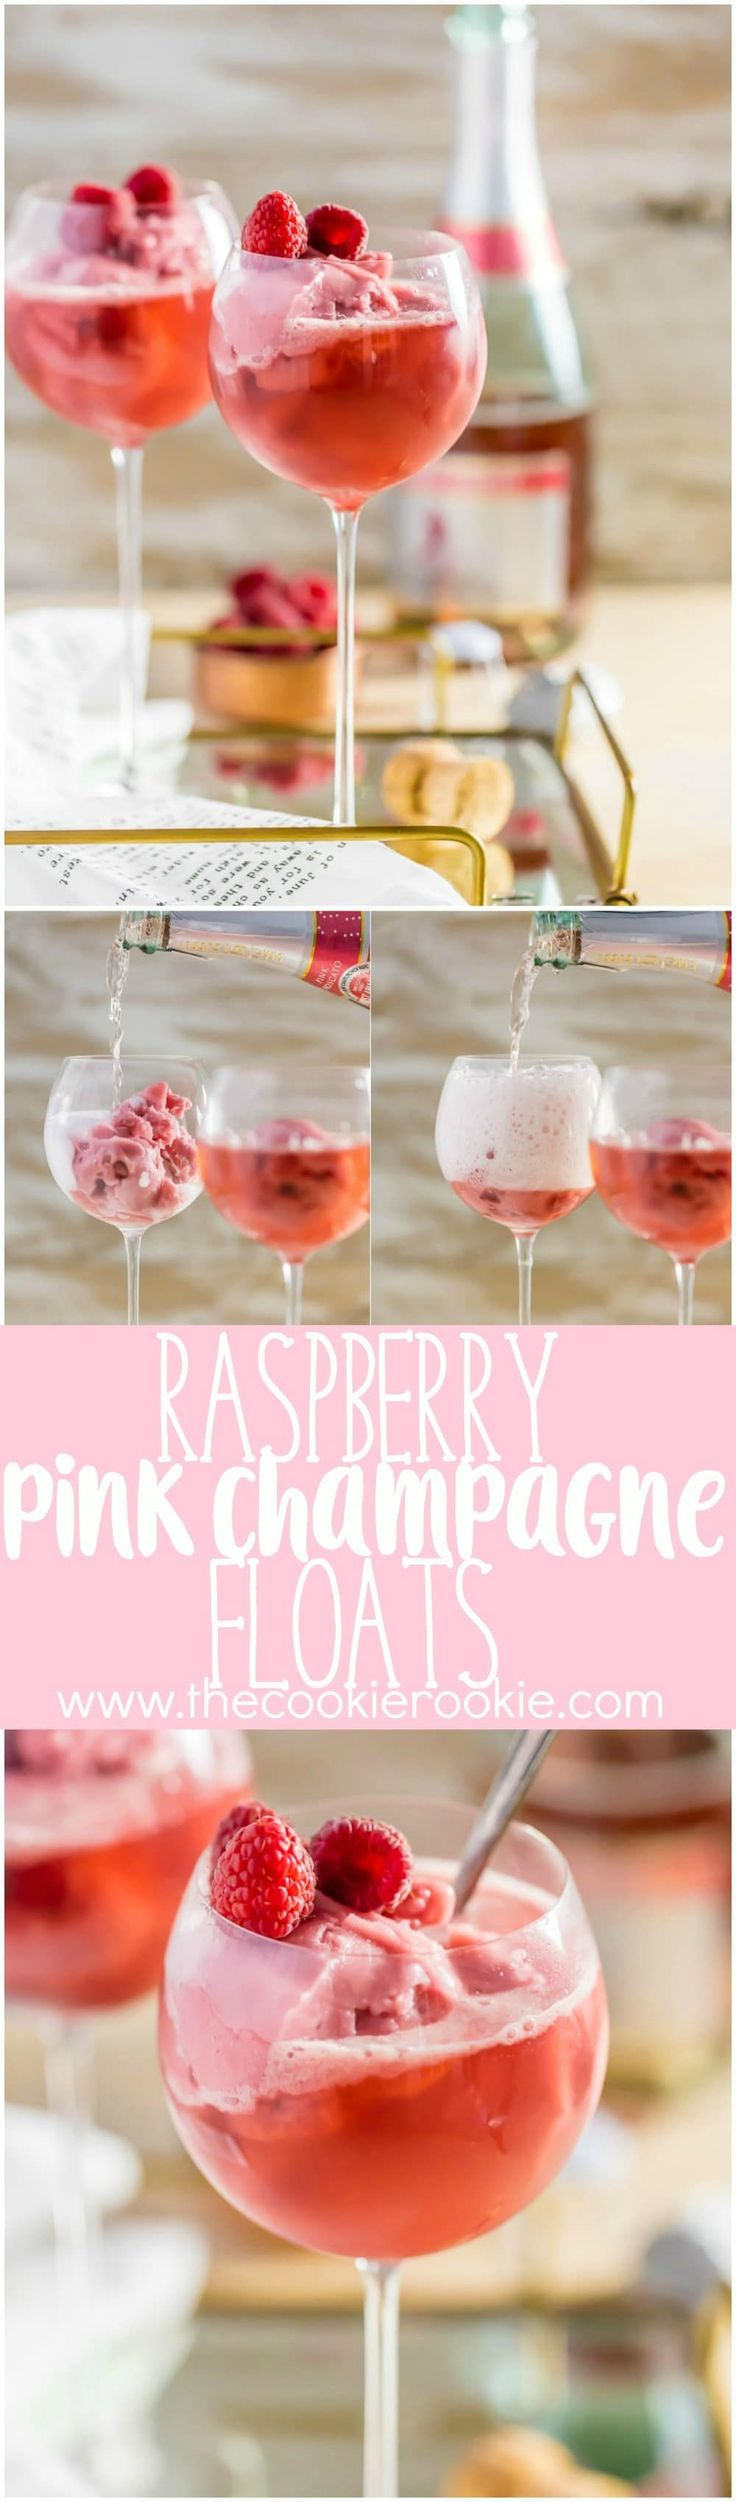 Raspberry Pink Champagne Floats, made with pink champagne and raspberry sorbet are the perfect Valentine's treat! Sorbet Mimosas are perfect for New Years Eve, Valentine's Day, baby showers, or wedding showers! Beautiful, EASY, and delicious!